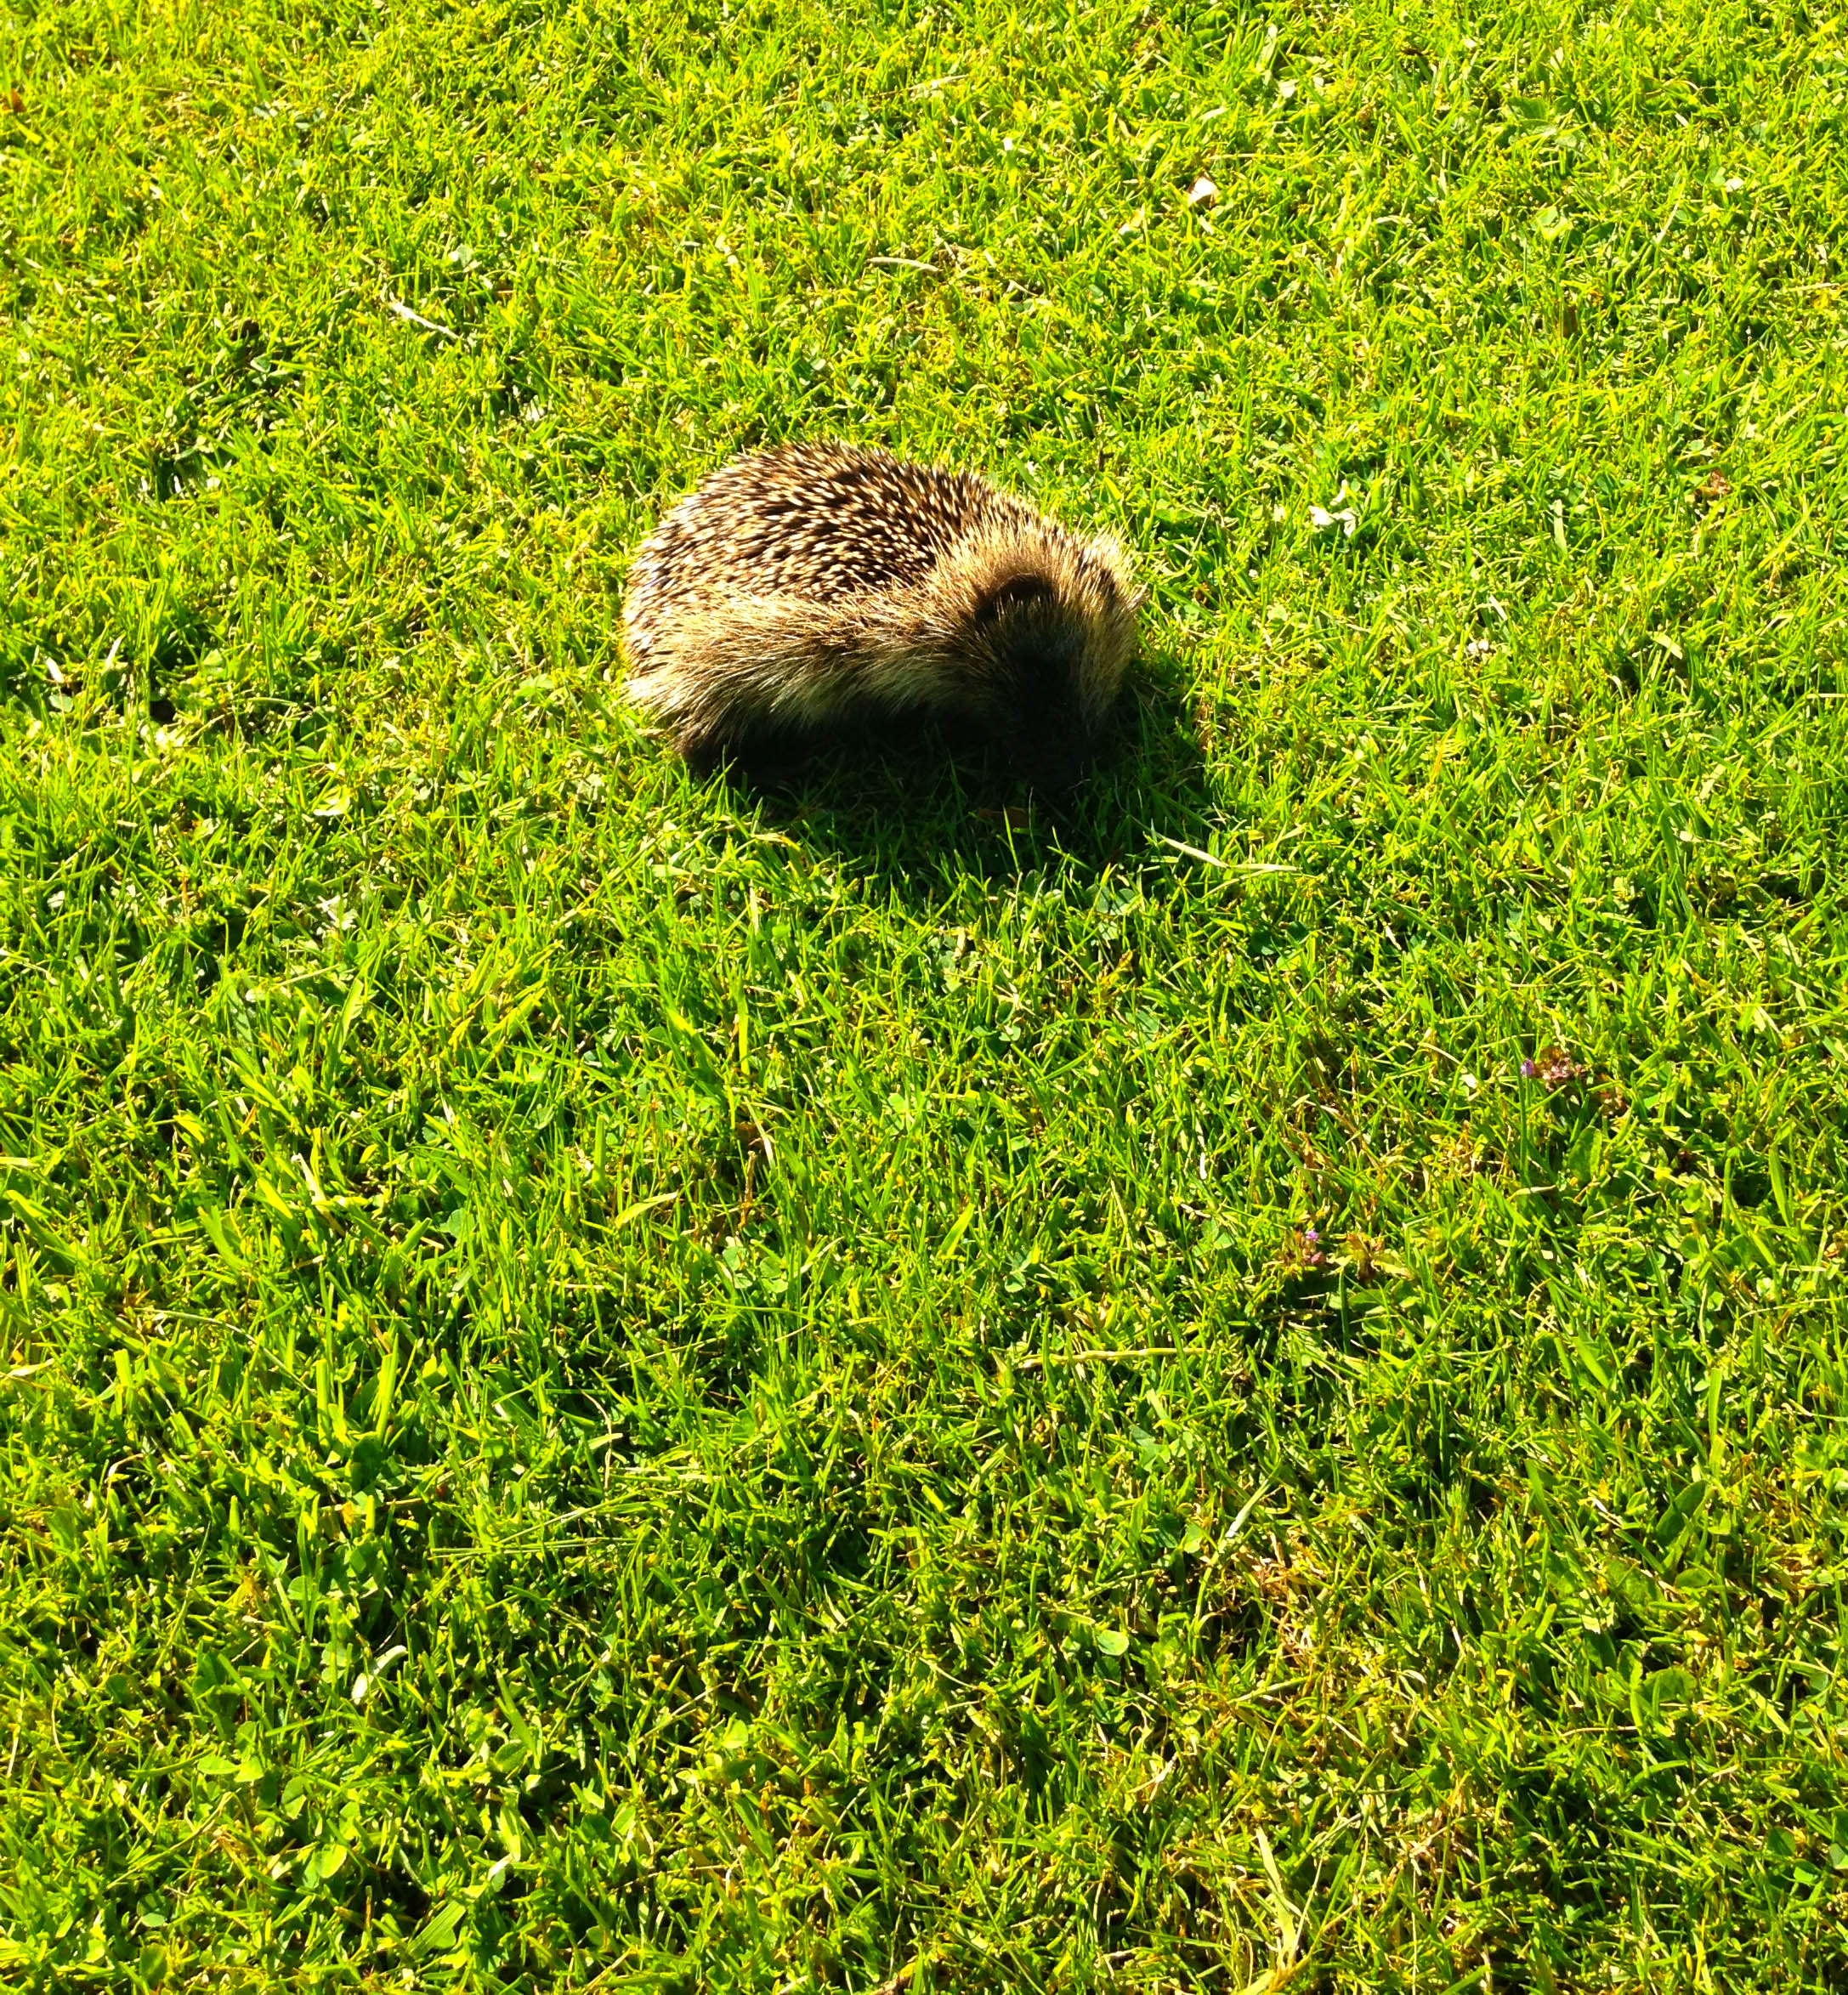 The Littlest Hedgehog